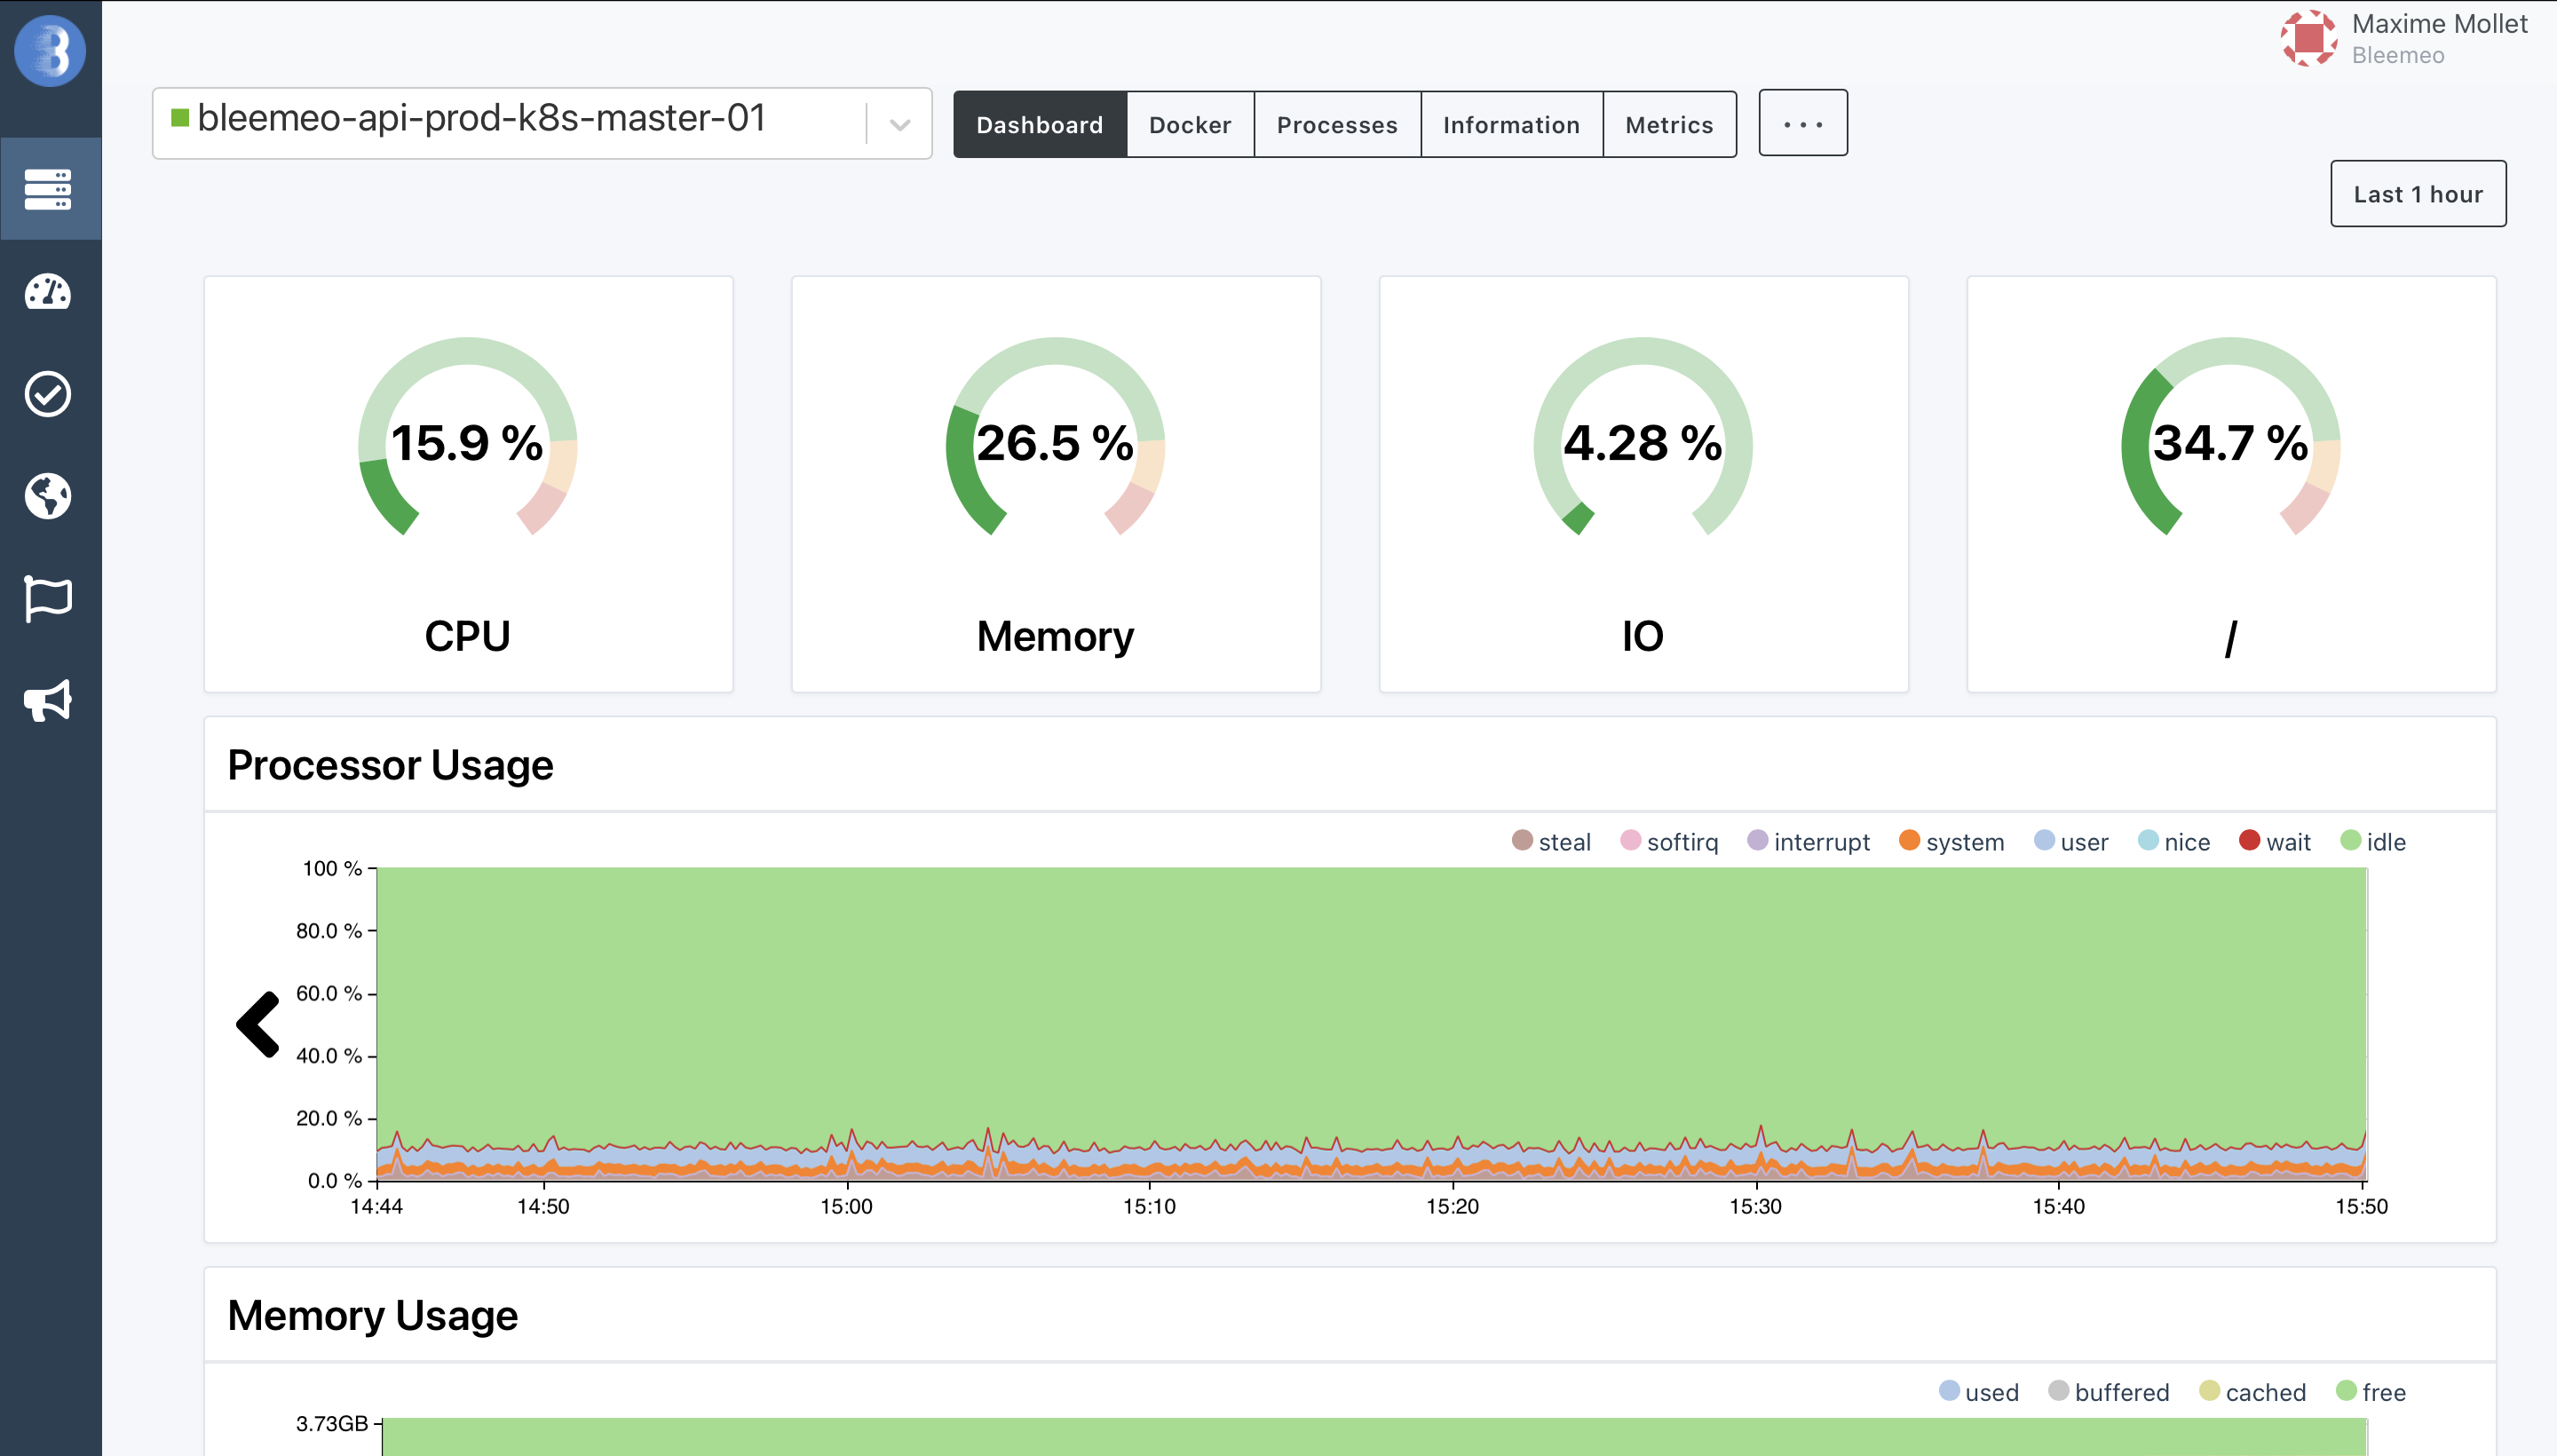 Real Time automated dashboards